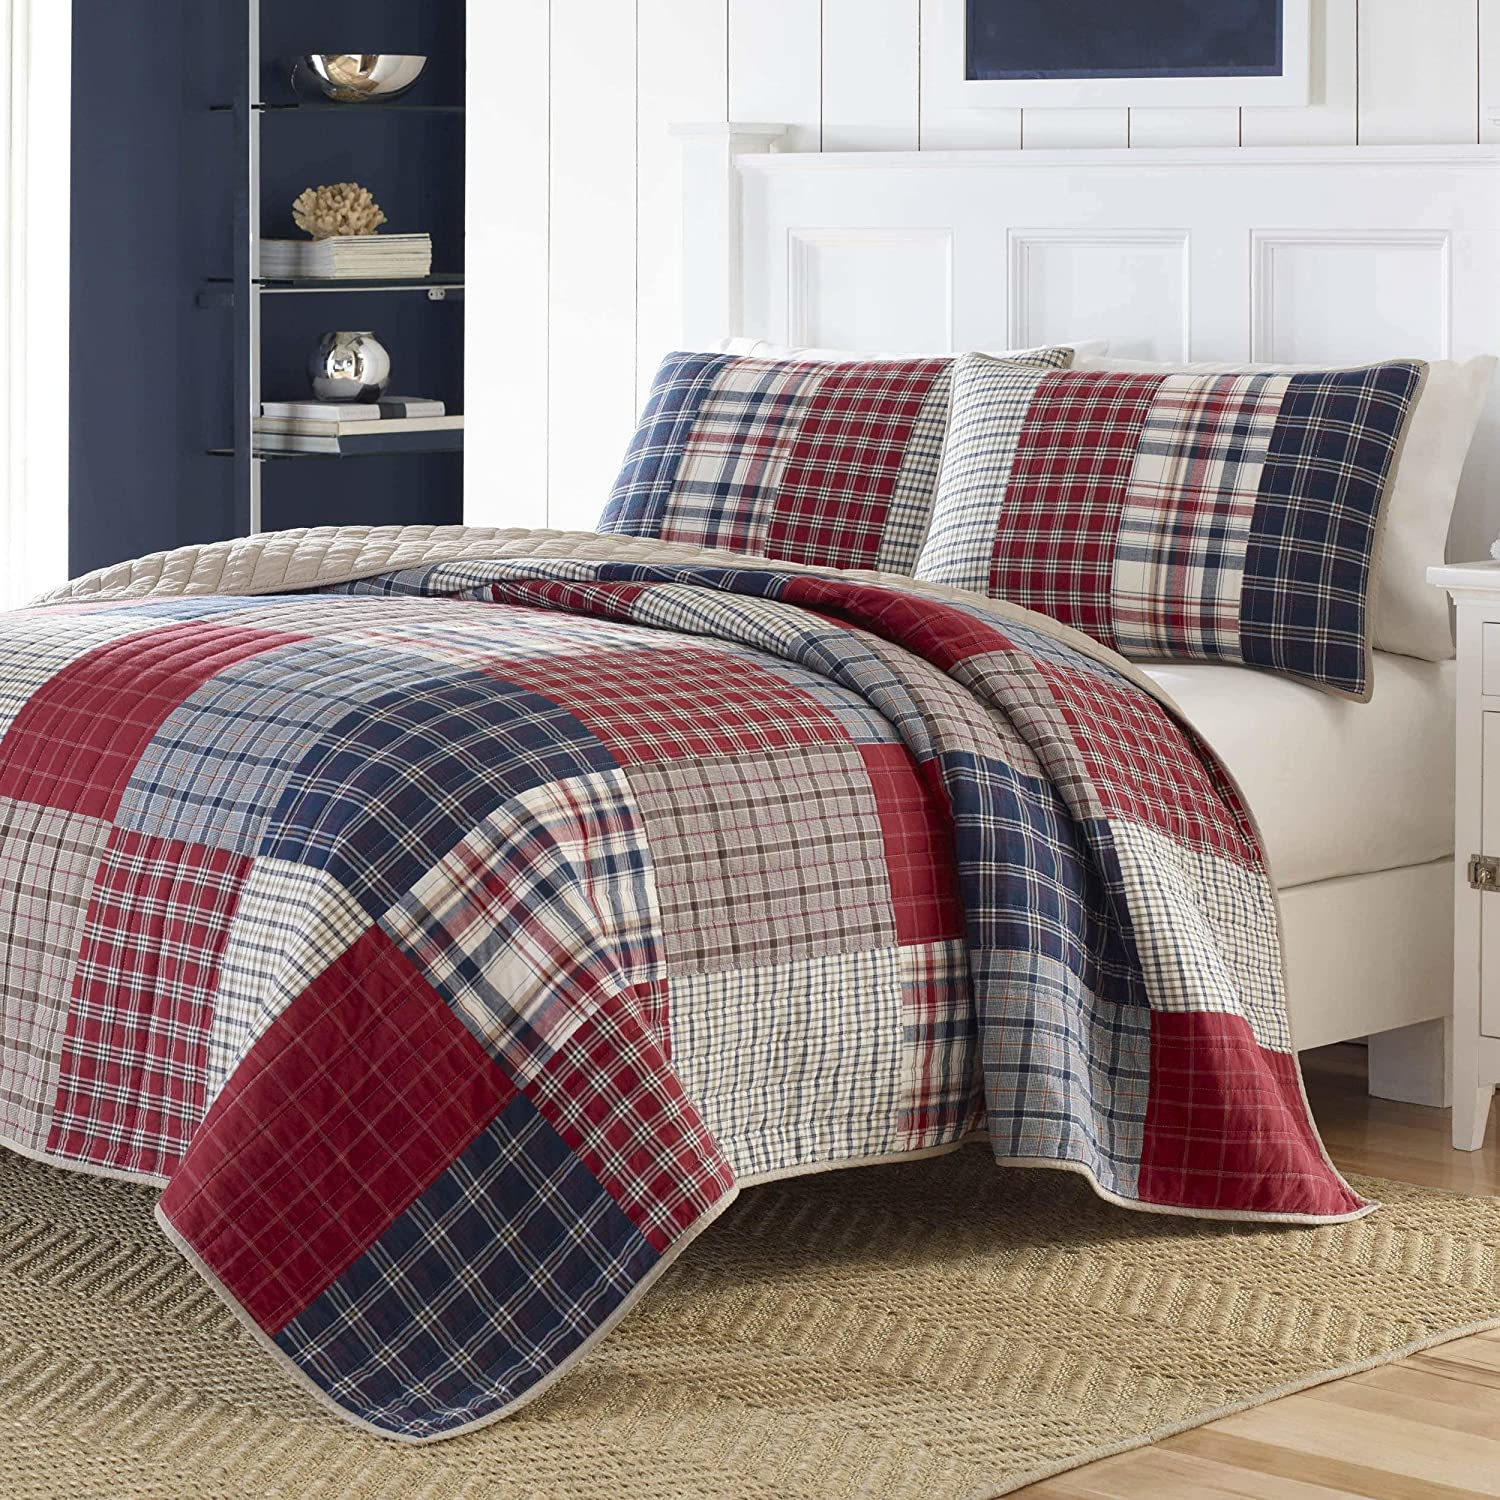 1 Piece Navy Blue Red Patchwork Plaid Pattern Quilt King Size, Luxurious White Khaki Tartan Gingham Checkered Reversible Bedding Nautical Coastal Check Design, Casual Style, Bold Colors, Soft Cotton